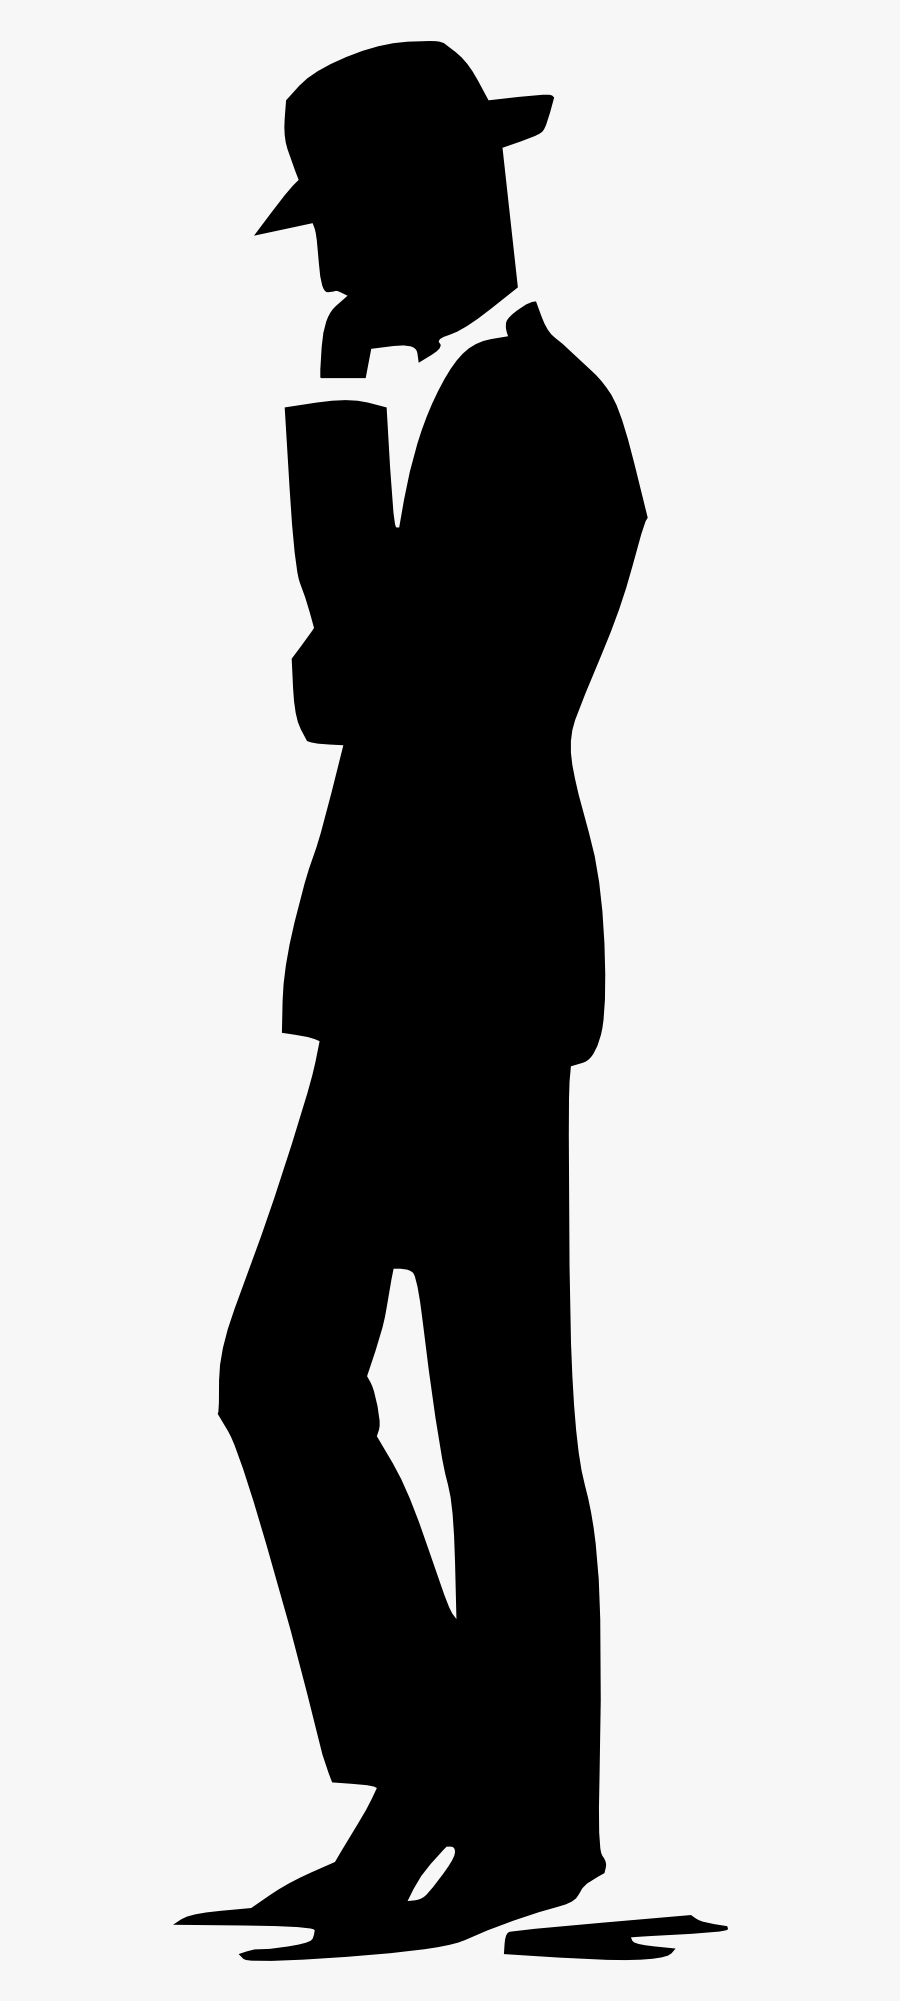 Silhouette Cartoon Clip Art - Man With Hat Silhouette Png, Transparent Clipart